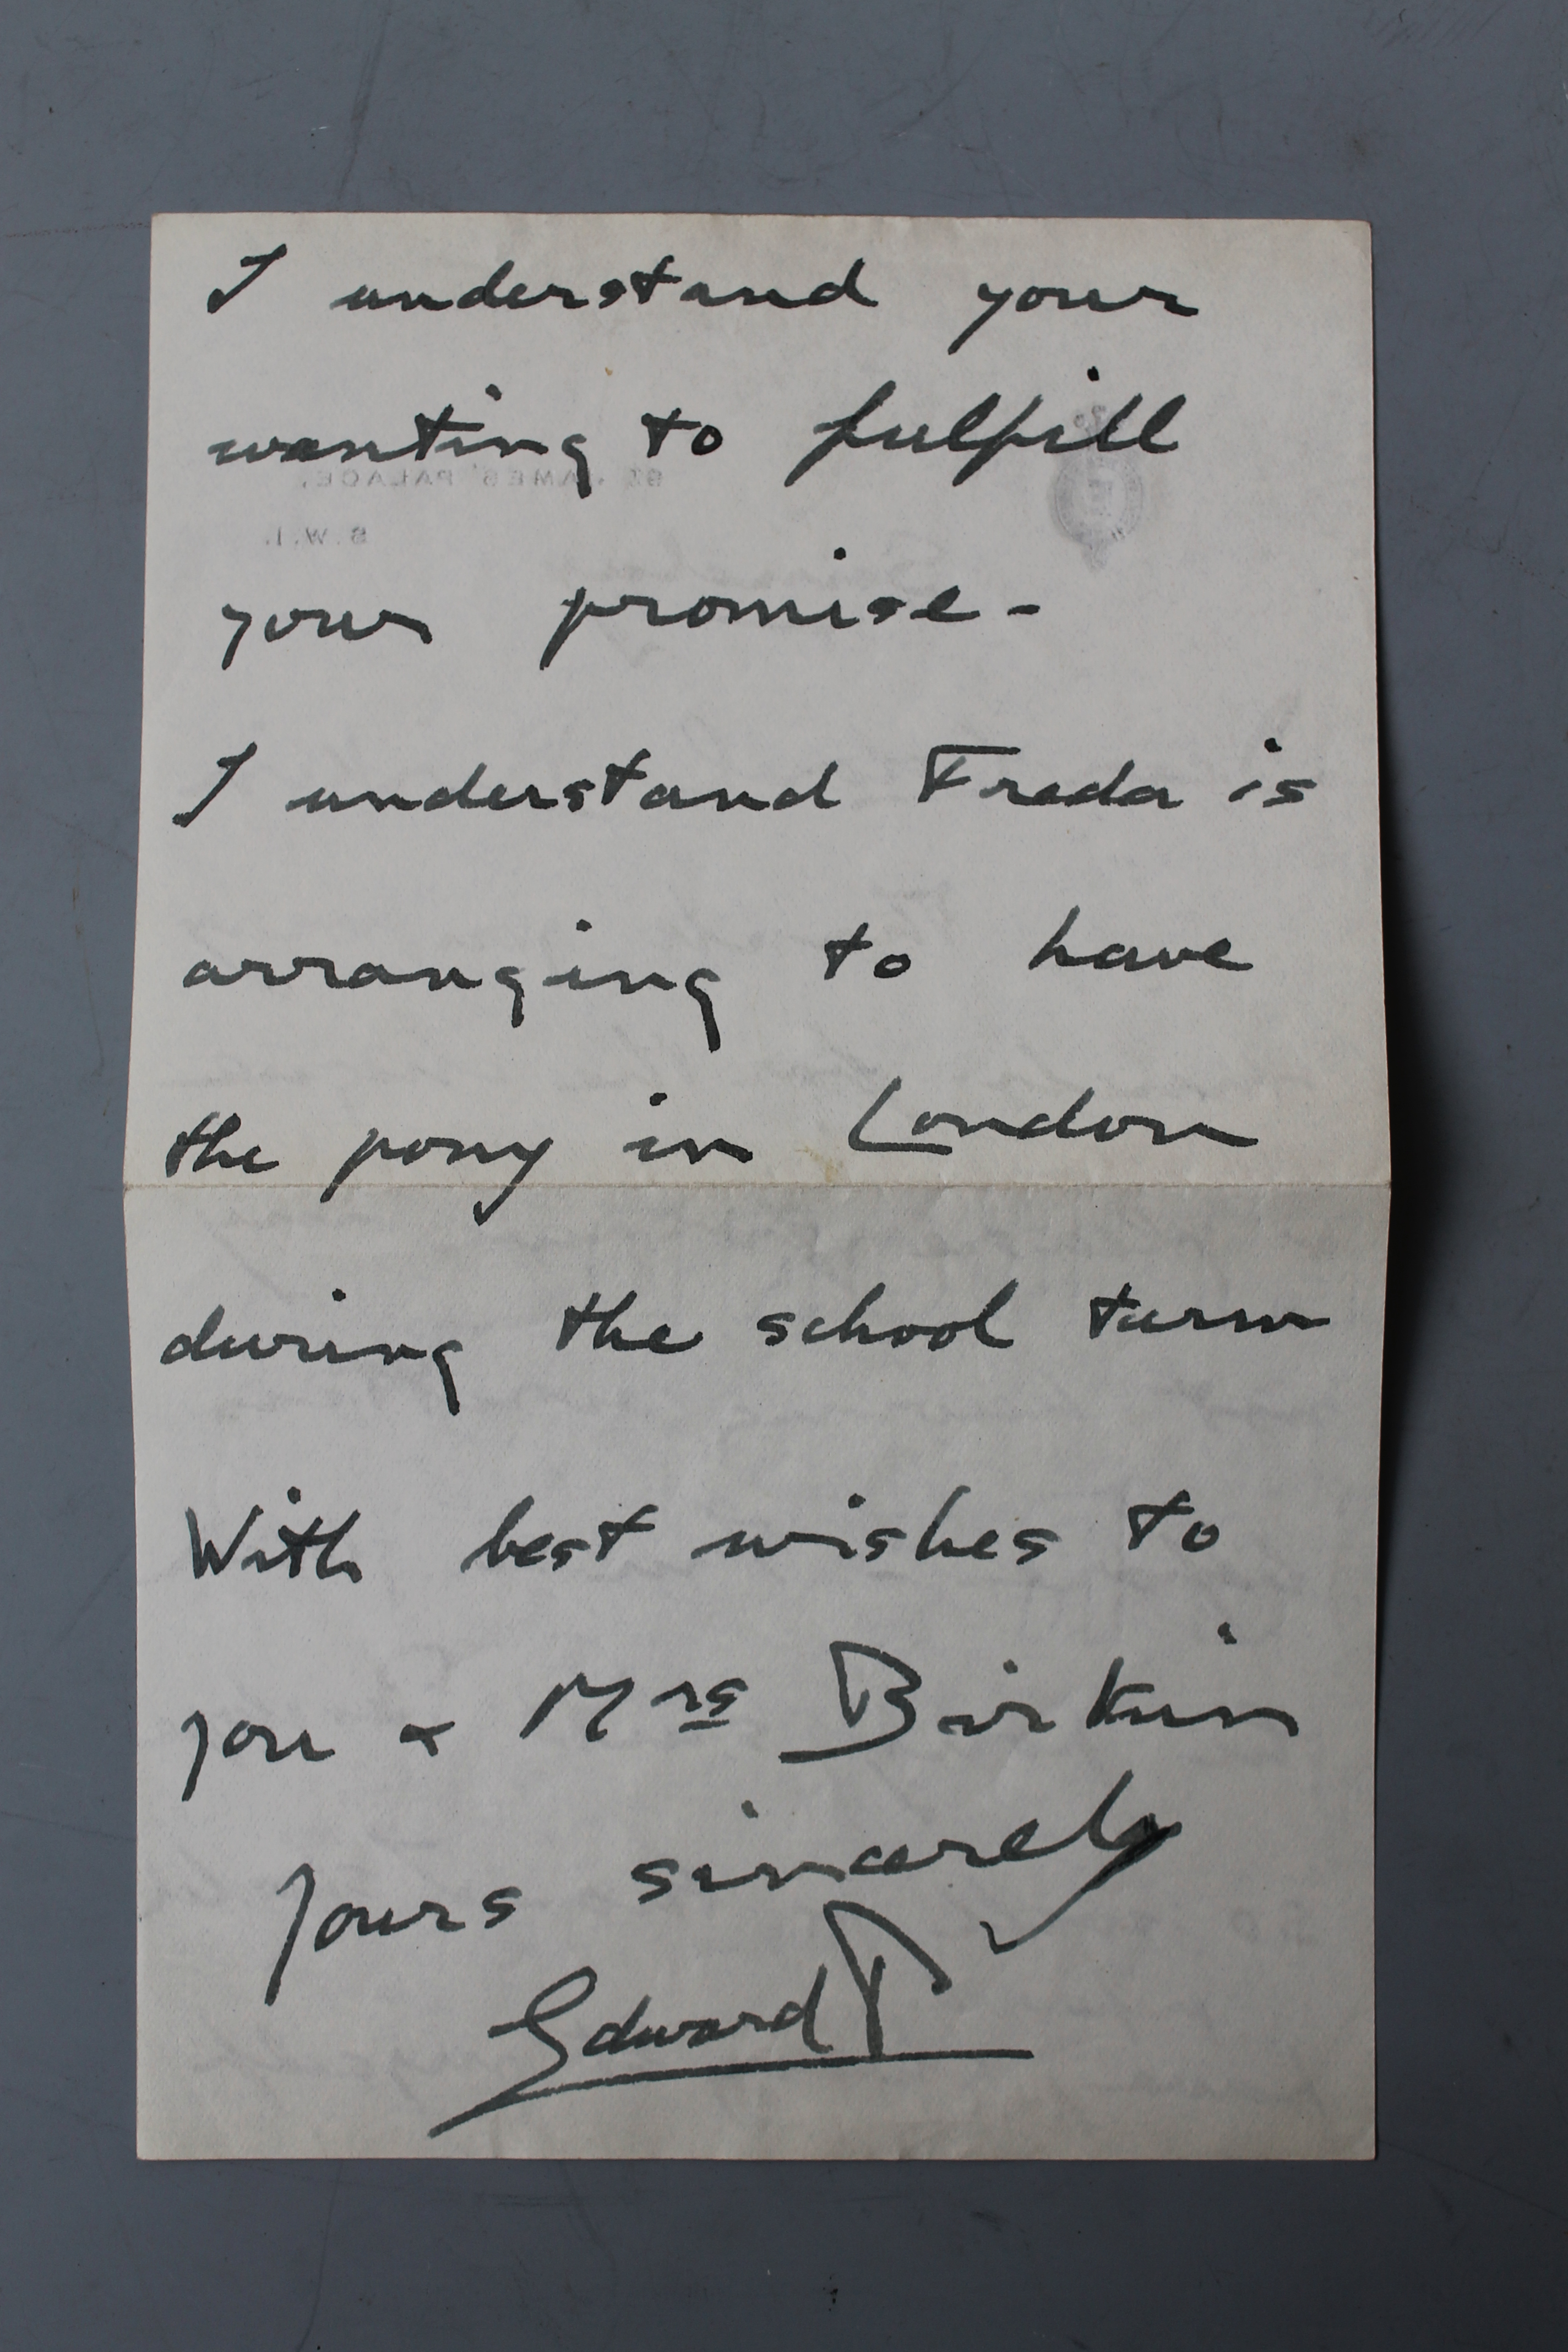 Royal Letters From Love Affair To Be Auctioned